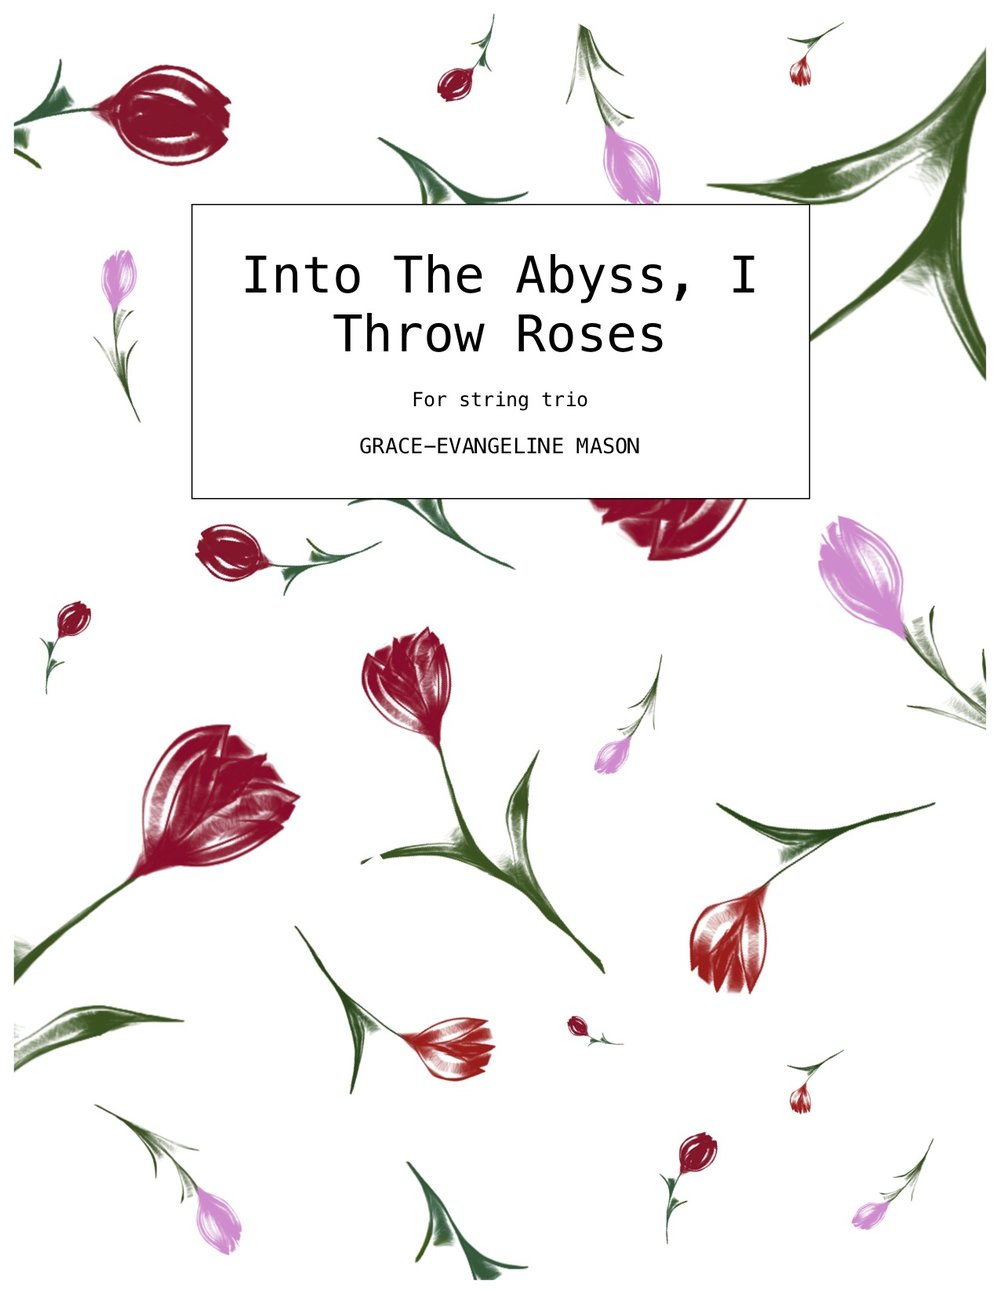 'Into The Abyss, I Throw Roses' (2018) - for violin, viola and violoncelloApprox. Duration: 7'Commissioned by the Park Lane Group with funding provided by the RVW Trust. First performance by the Eblana String Trio in the Southbank Soundstate Sessions, Purcell Room, London (17/01/19)'Into The Abyss, I Throw Roses (2018) for string trio is inspired by words from Friedrich Nietzsche's Posthumous Fragments dating November 1882 to February 1883. 'You have overcome yourself: but why do you show yourself to me only as the one overcome? I want to see the victor: throw roses into the abyss and say,